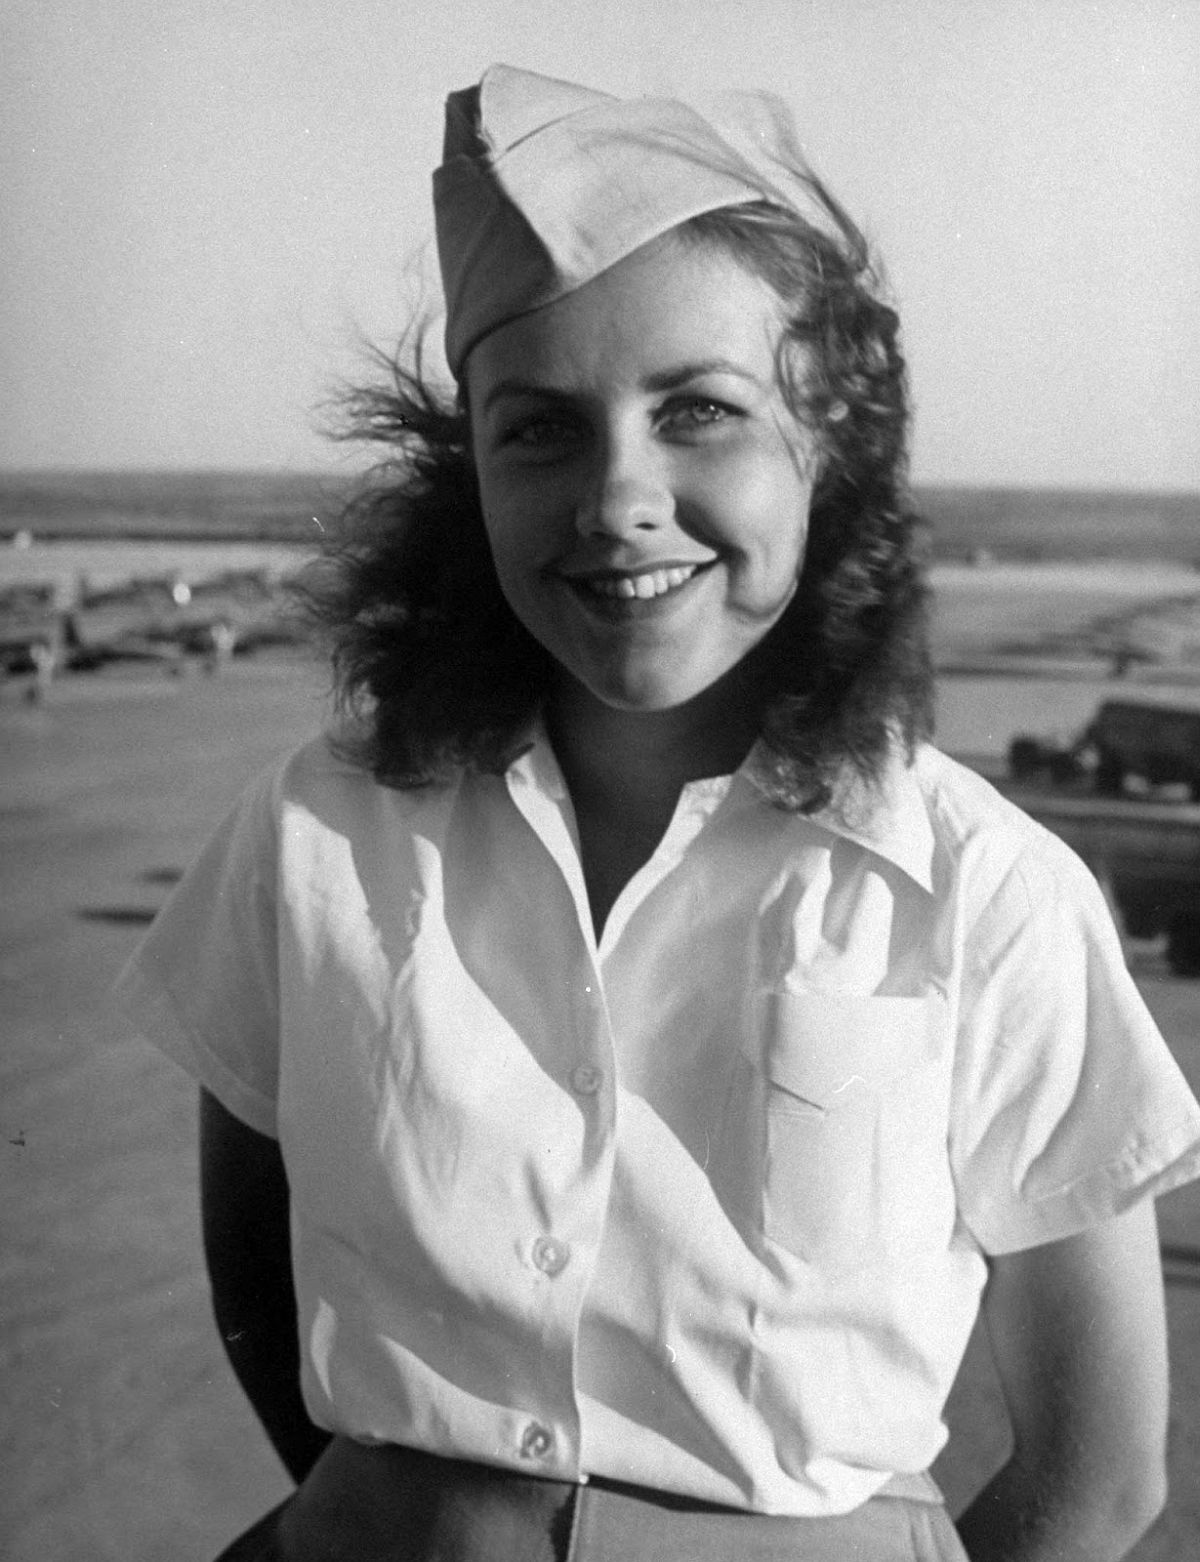 In official dress uniform of white blouse, tan slacks and overseas cap, Shirley Slade smiles as her hair ruffles in Texas wind, free from the pigtail anchoring it has in LIFE's cover picture. The girls wear dress slacks for drill demonstrations and at graduation ceremony.